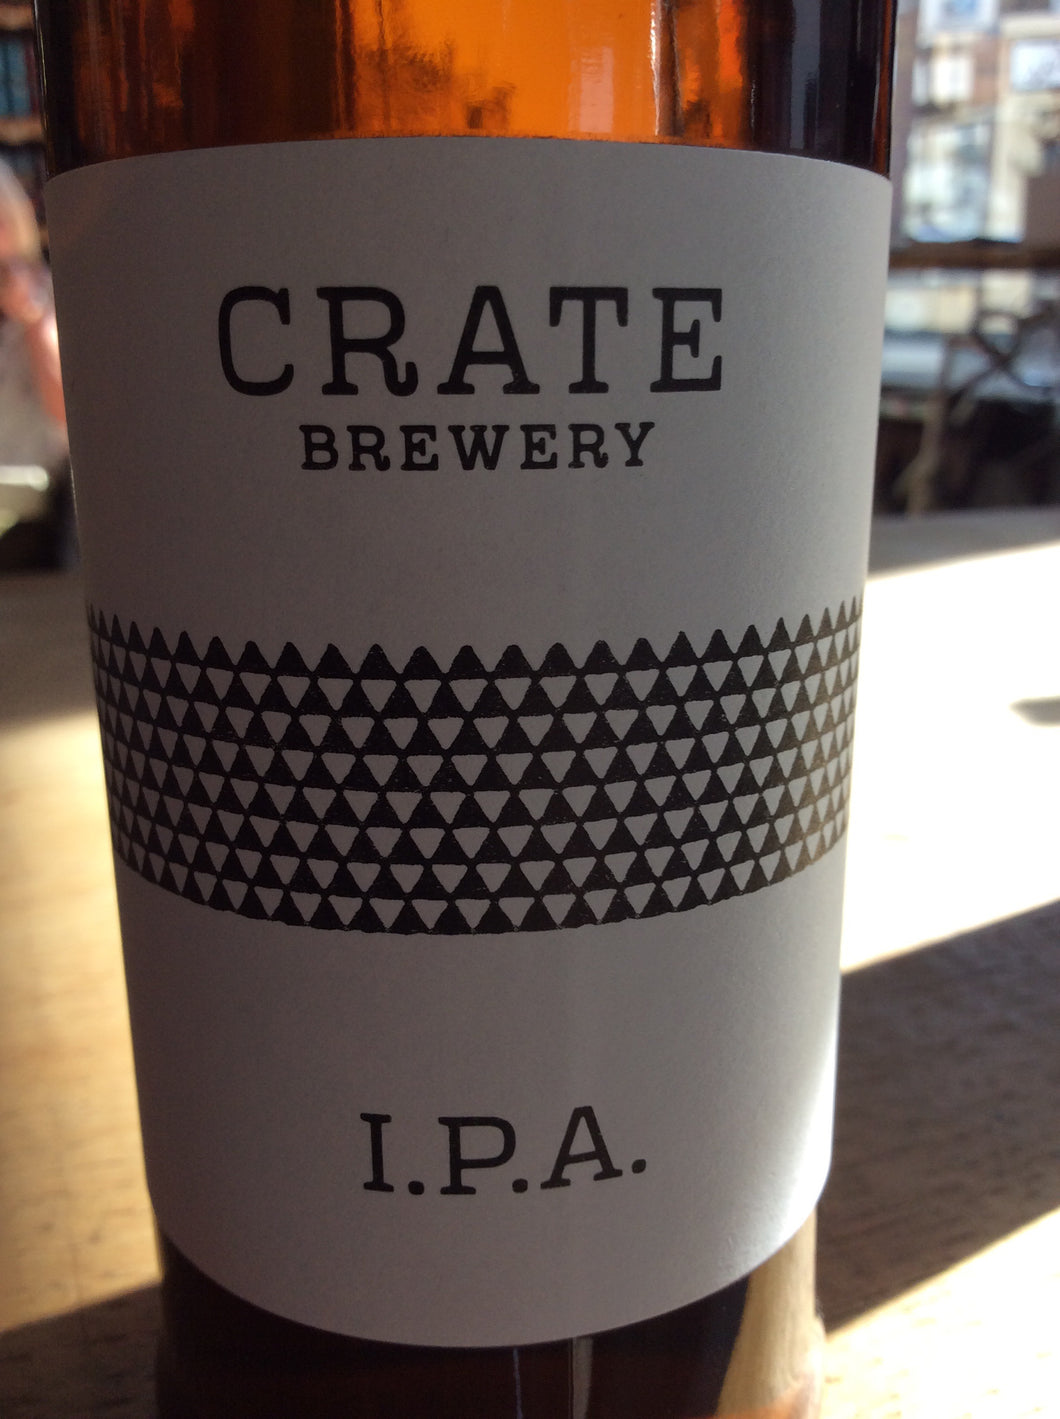 Crate Brewery - IPA